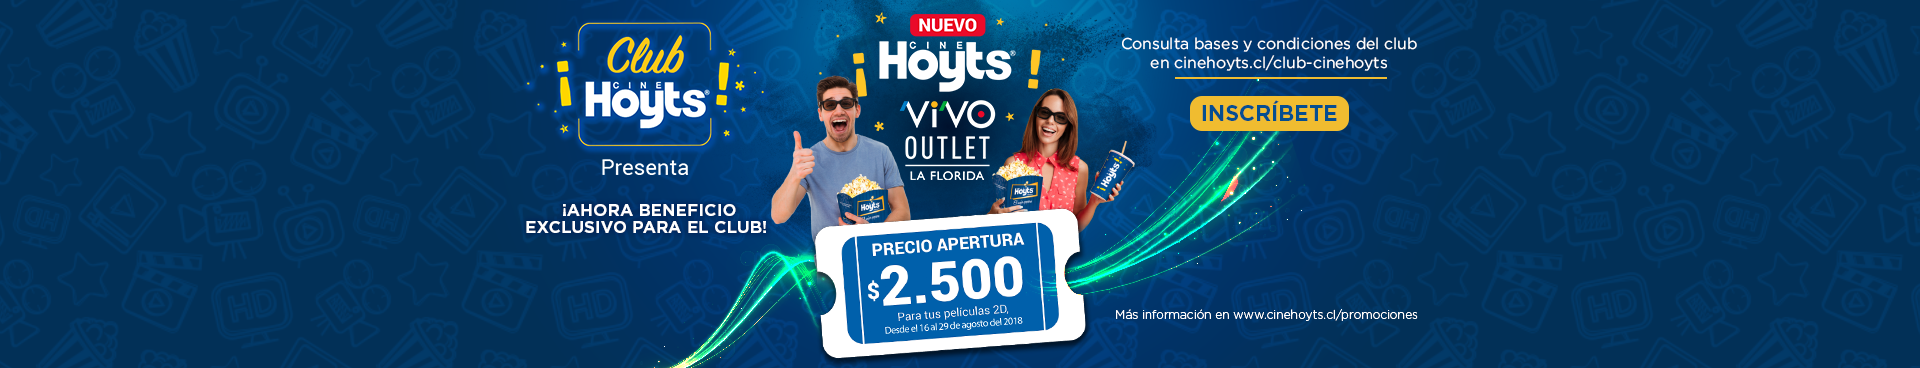 Club CineHoyts Vivo la Florida